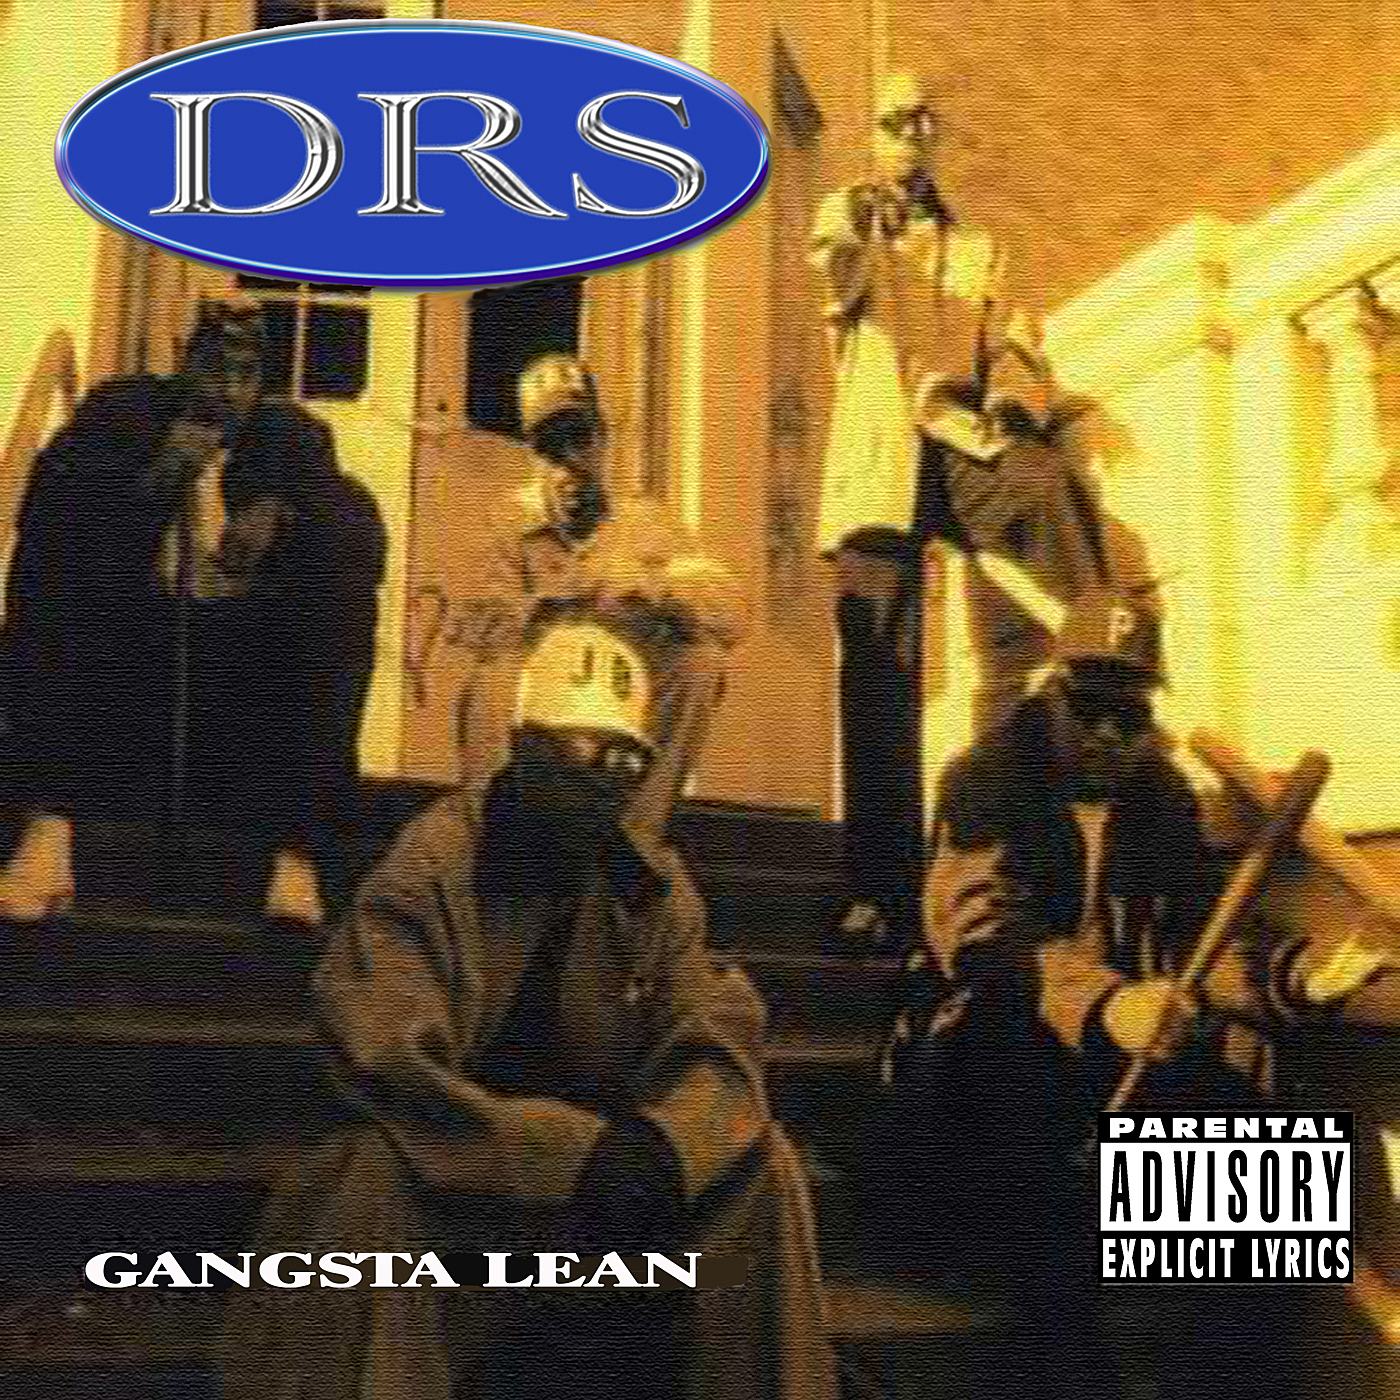 D. R. S. Radio: listen to free music & get the latest info | iheartradio.